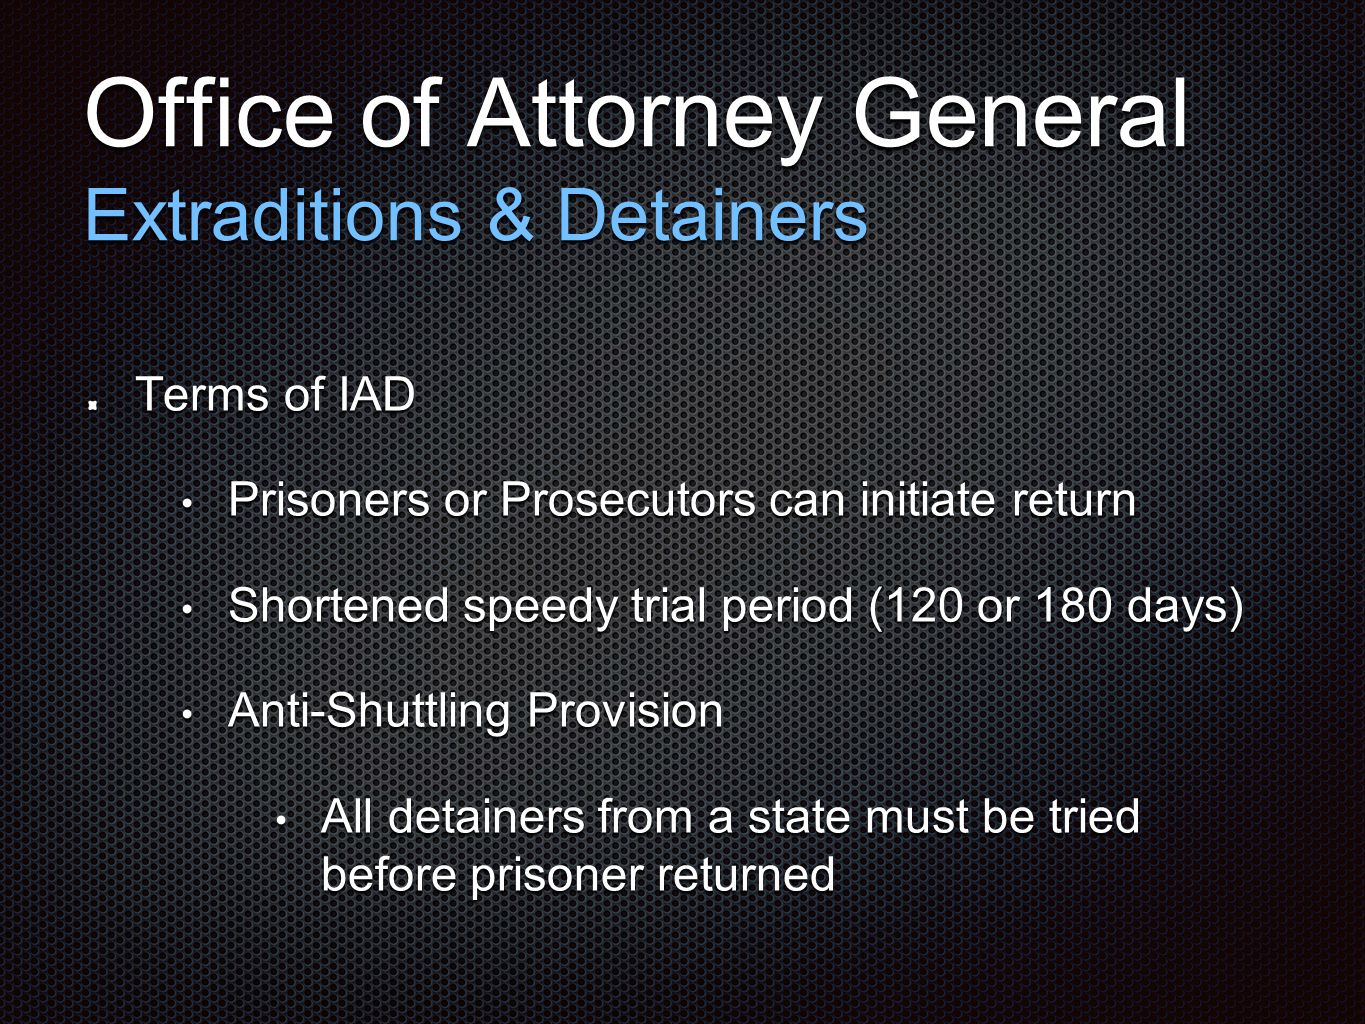 Office of Attorney General Extraditions & Detainers Terms of IAD Prisoners or Prosecutors can initiate return Prisoners or Prosecutors can initiate return Shortened speedy trial period (120 or 180 days) Shortened speedy trial period (120 or 180 days) Anti-Shuttling Provision Anti-Shuttling Provision All detainers from a state must be tried before prisoner returned All detainers from a state must be tried before prisoner returned